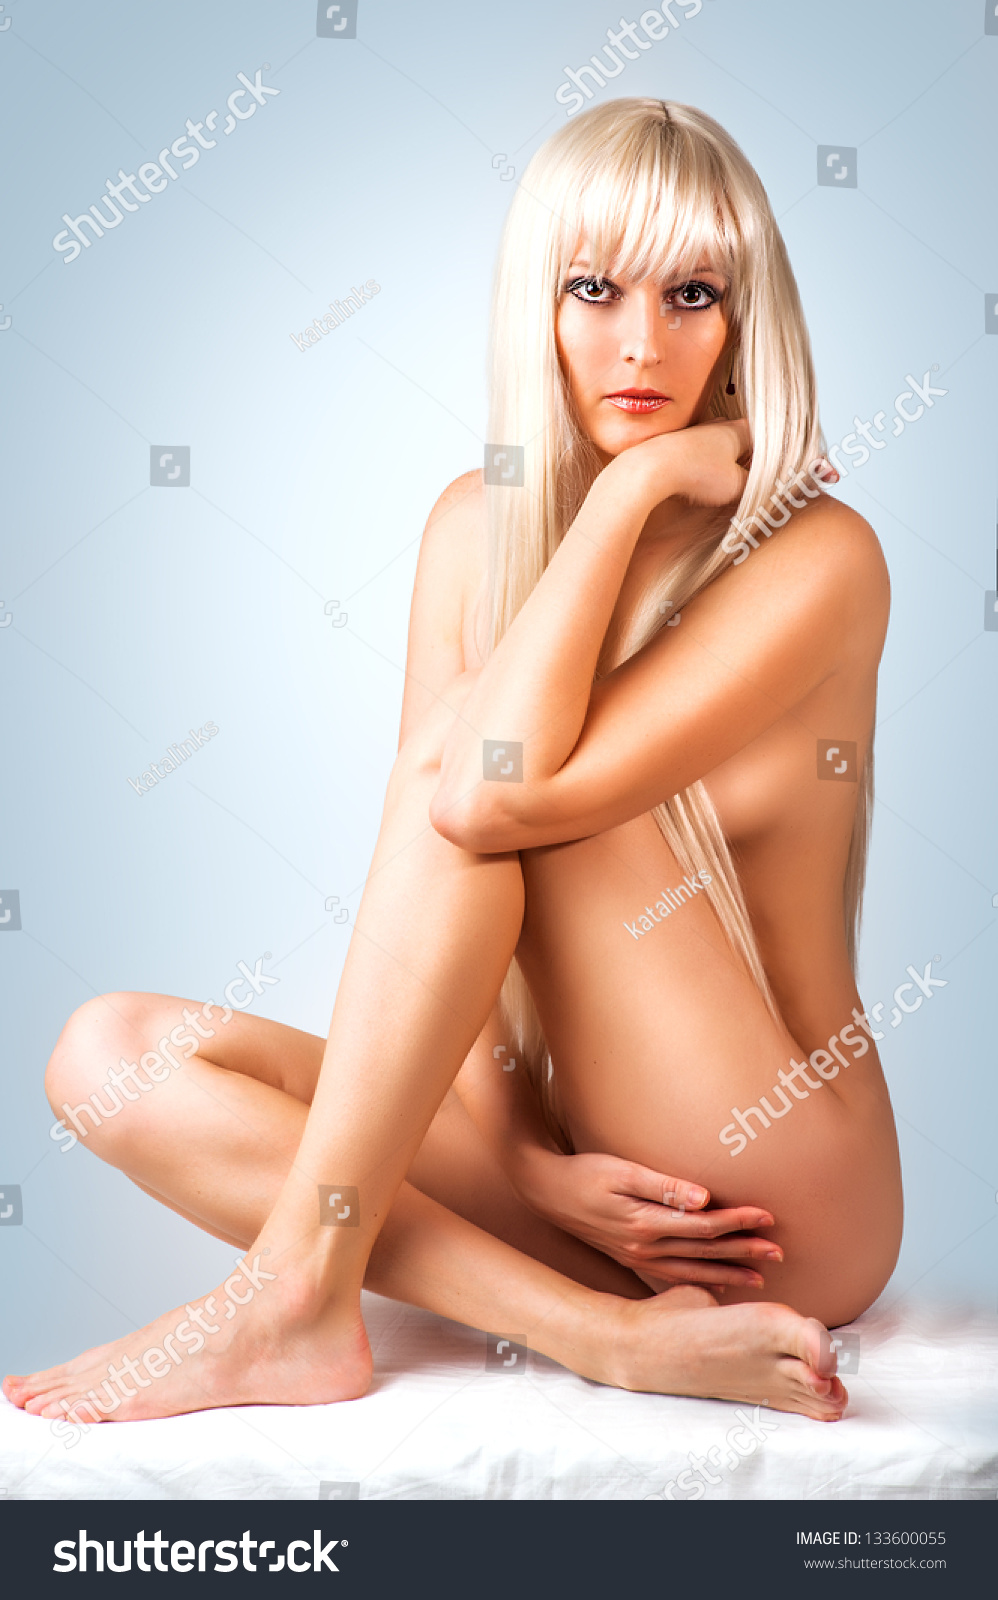 Blonde naked women